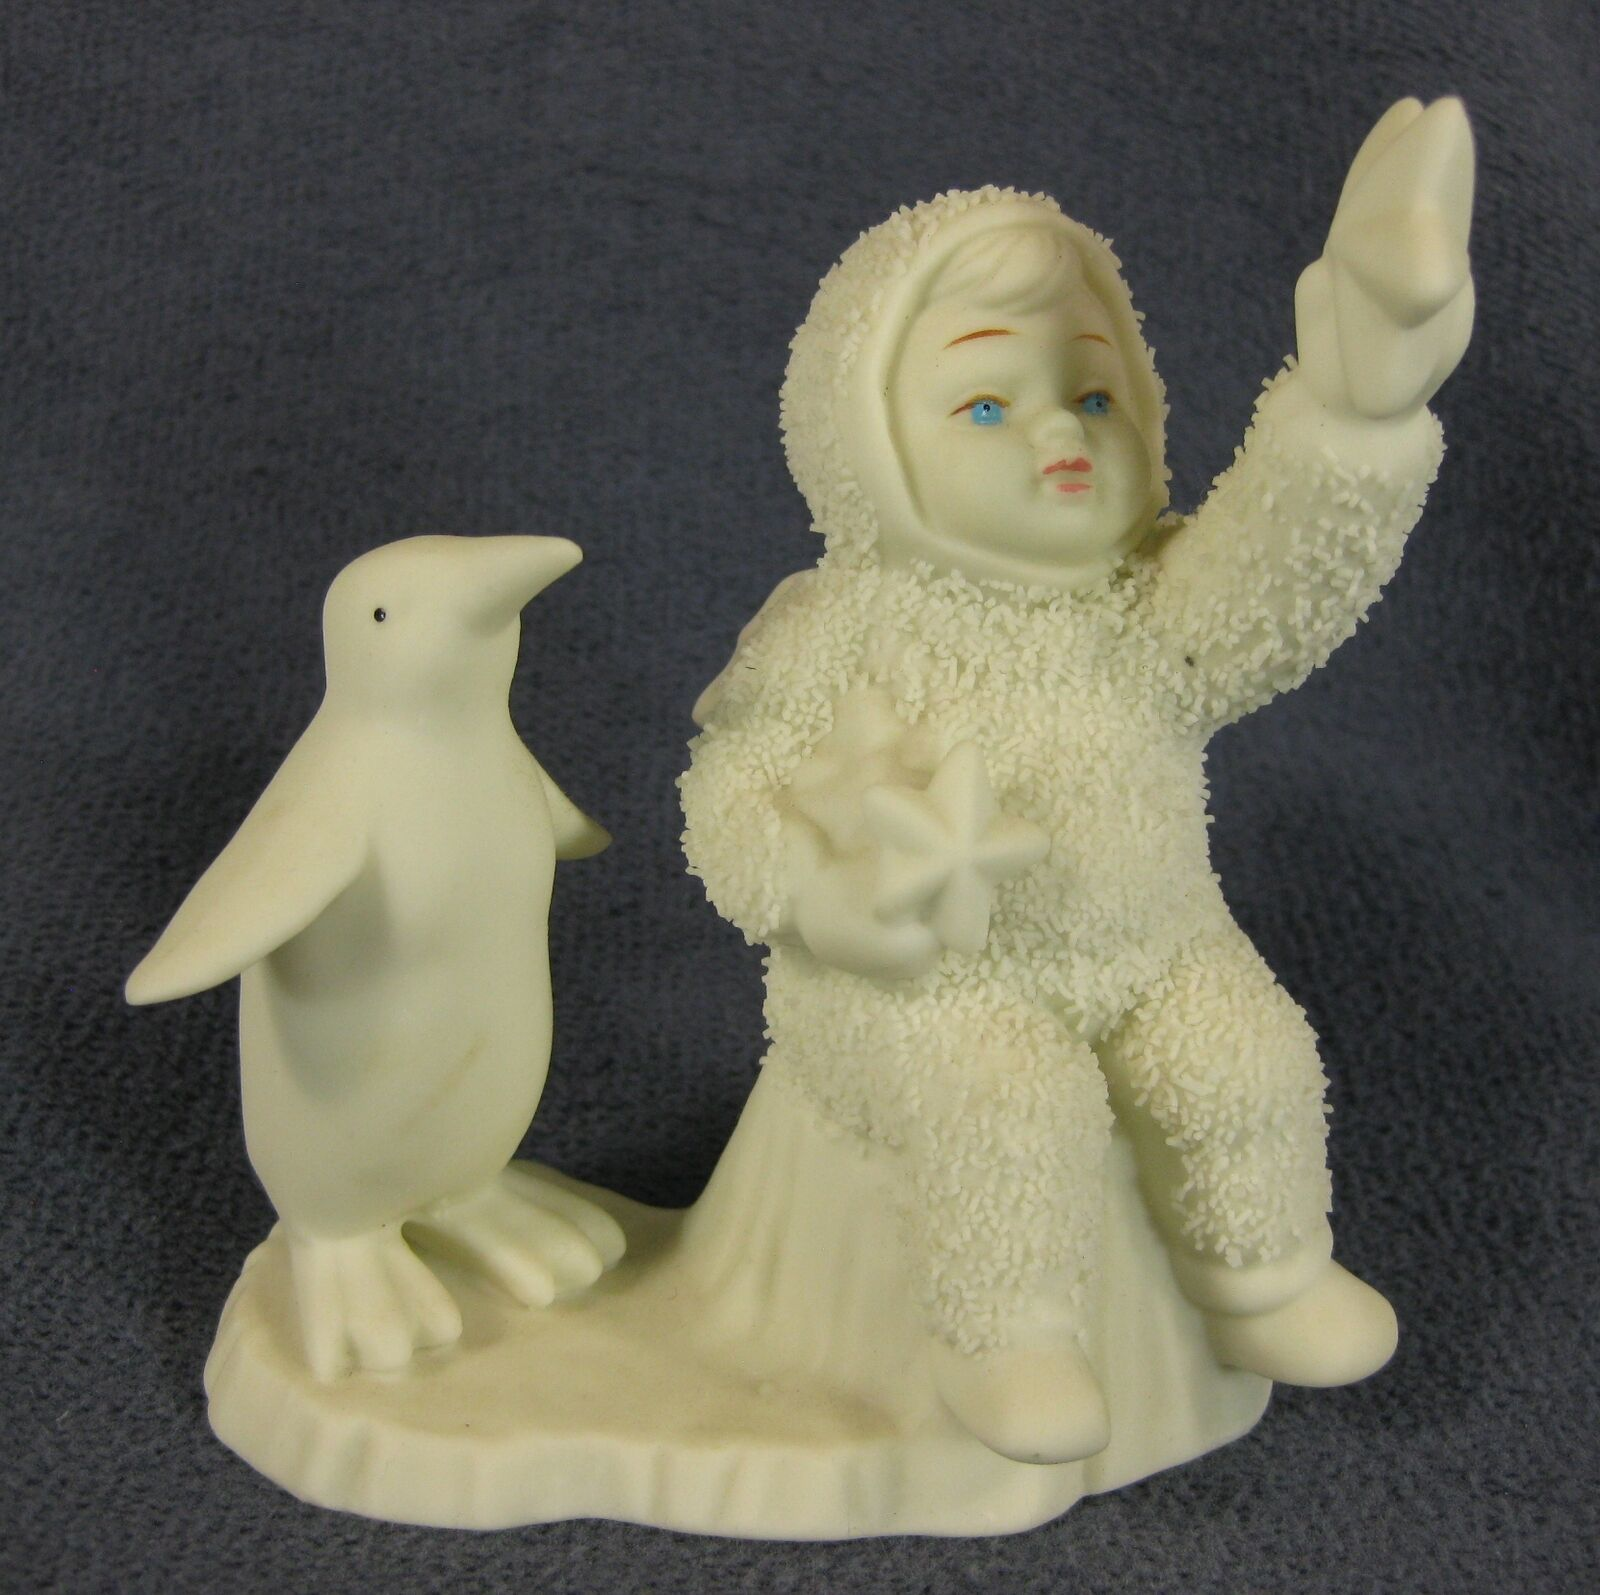 Primary image for Snowbabies Wishing On A Star 79430 Department 56 Figurine Retired 1994 No Box